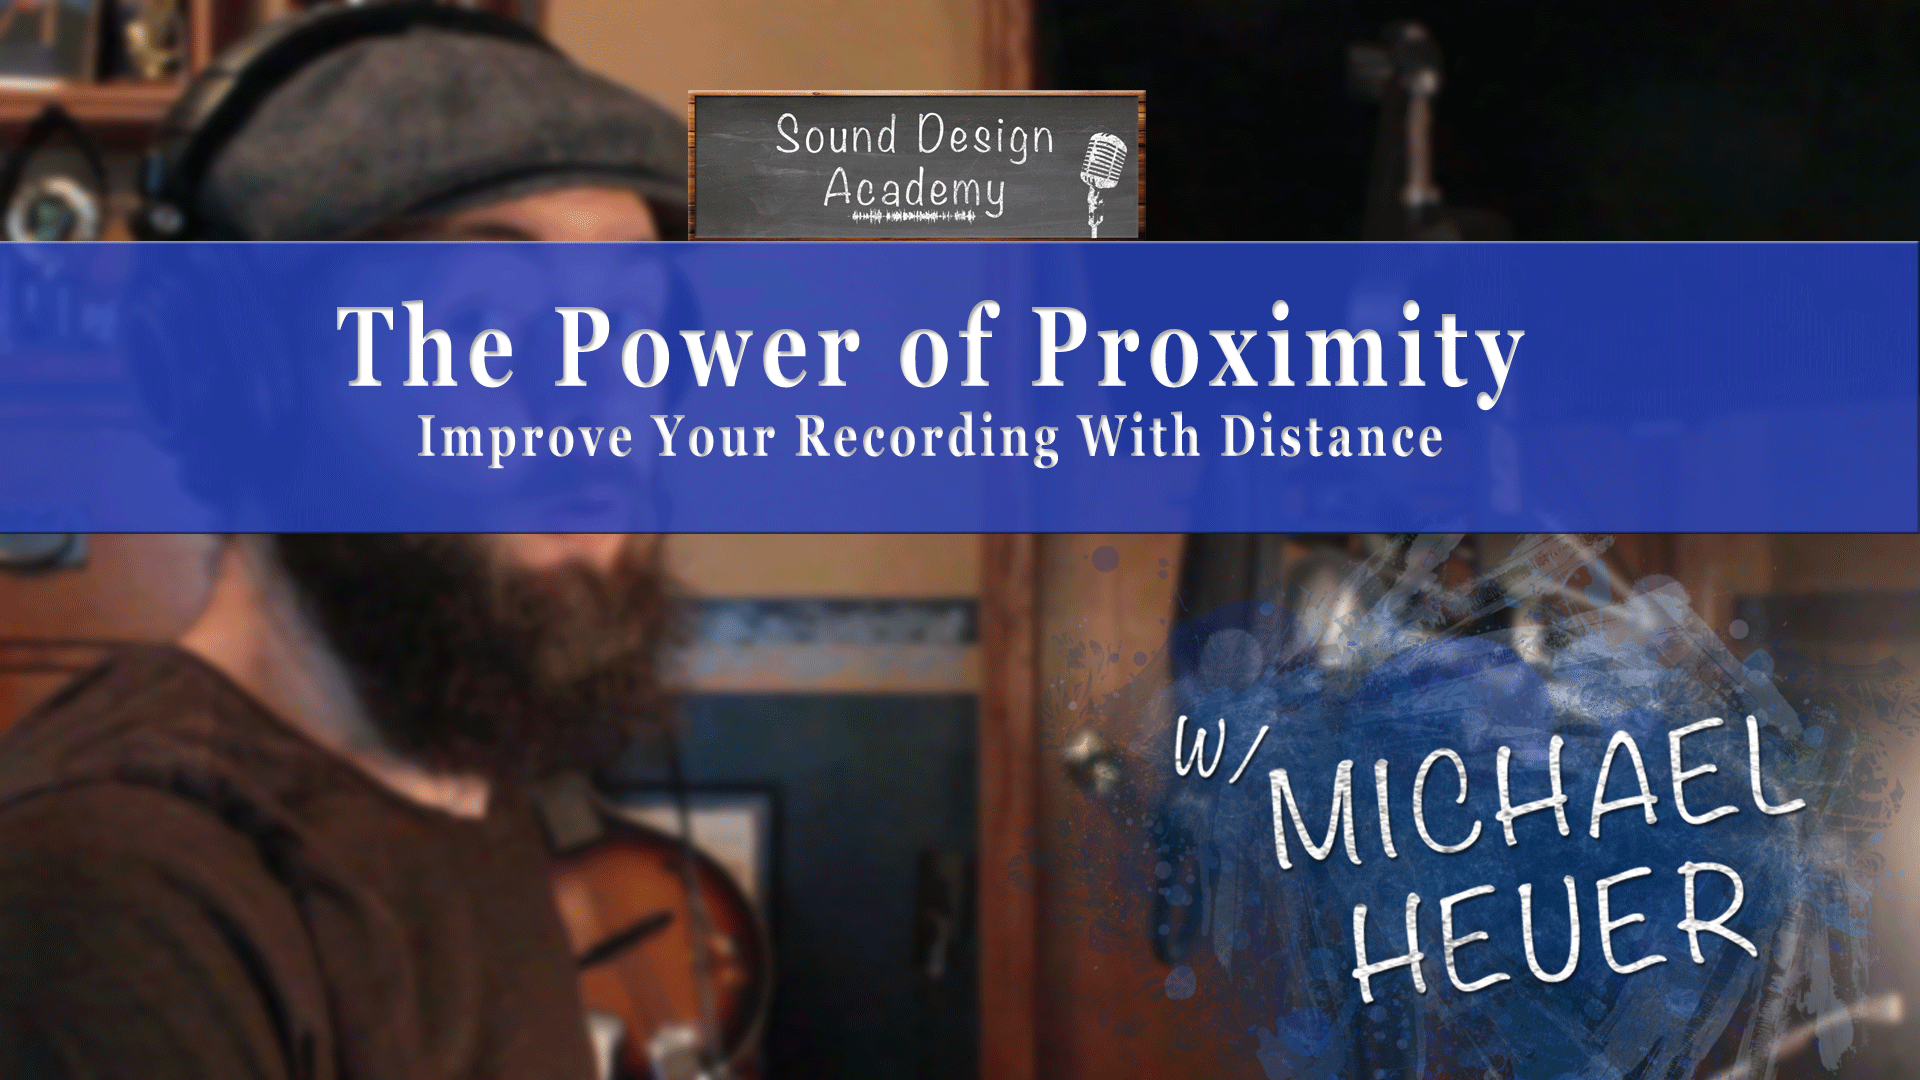 The-Power-of-Proximity using the proximity effect to improve your audio